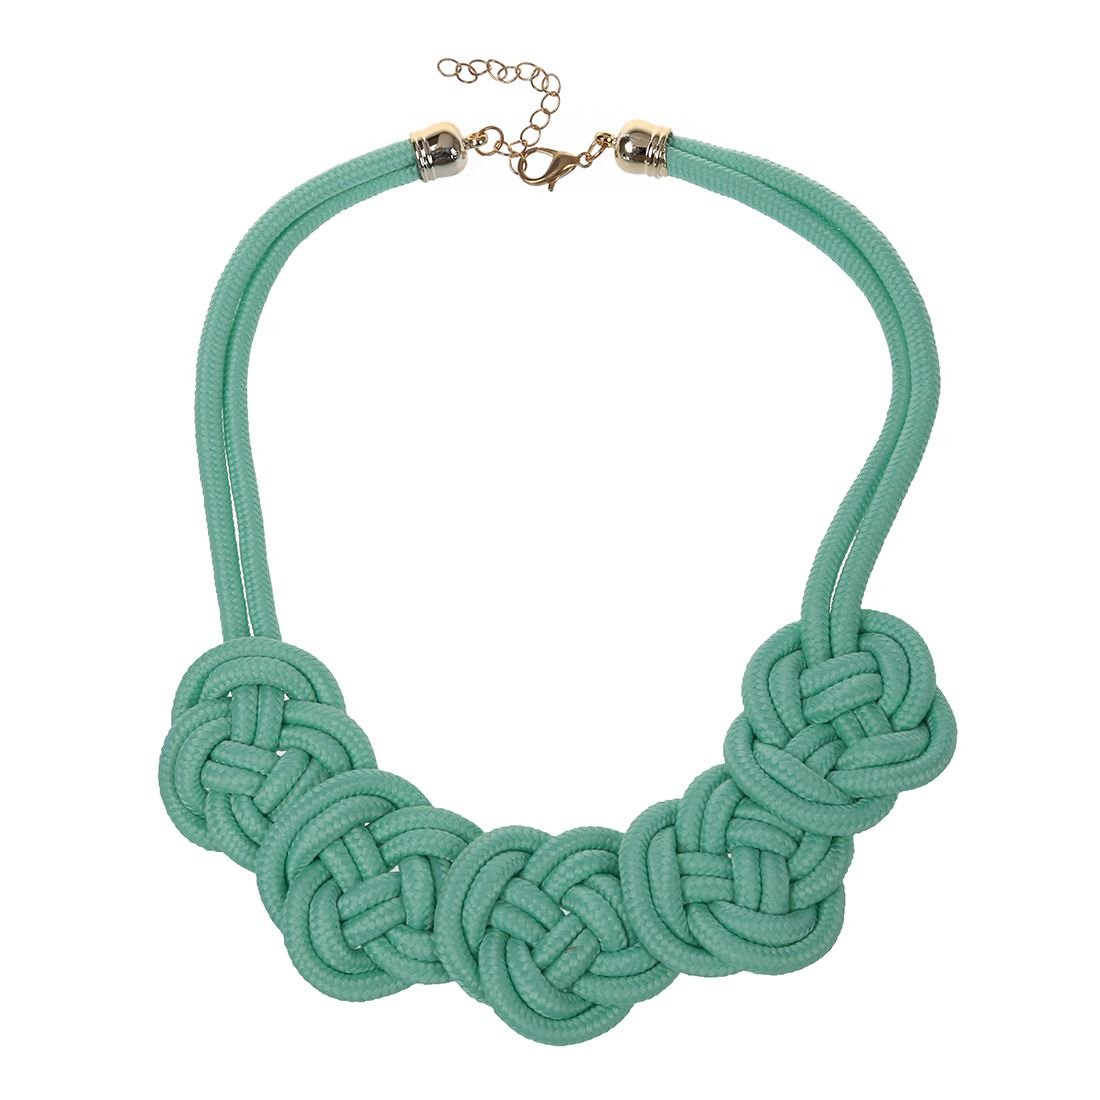 TOOGOO(R) Bright Neon Knot Fabric Statement Collar Necklace - Green